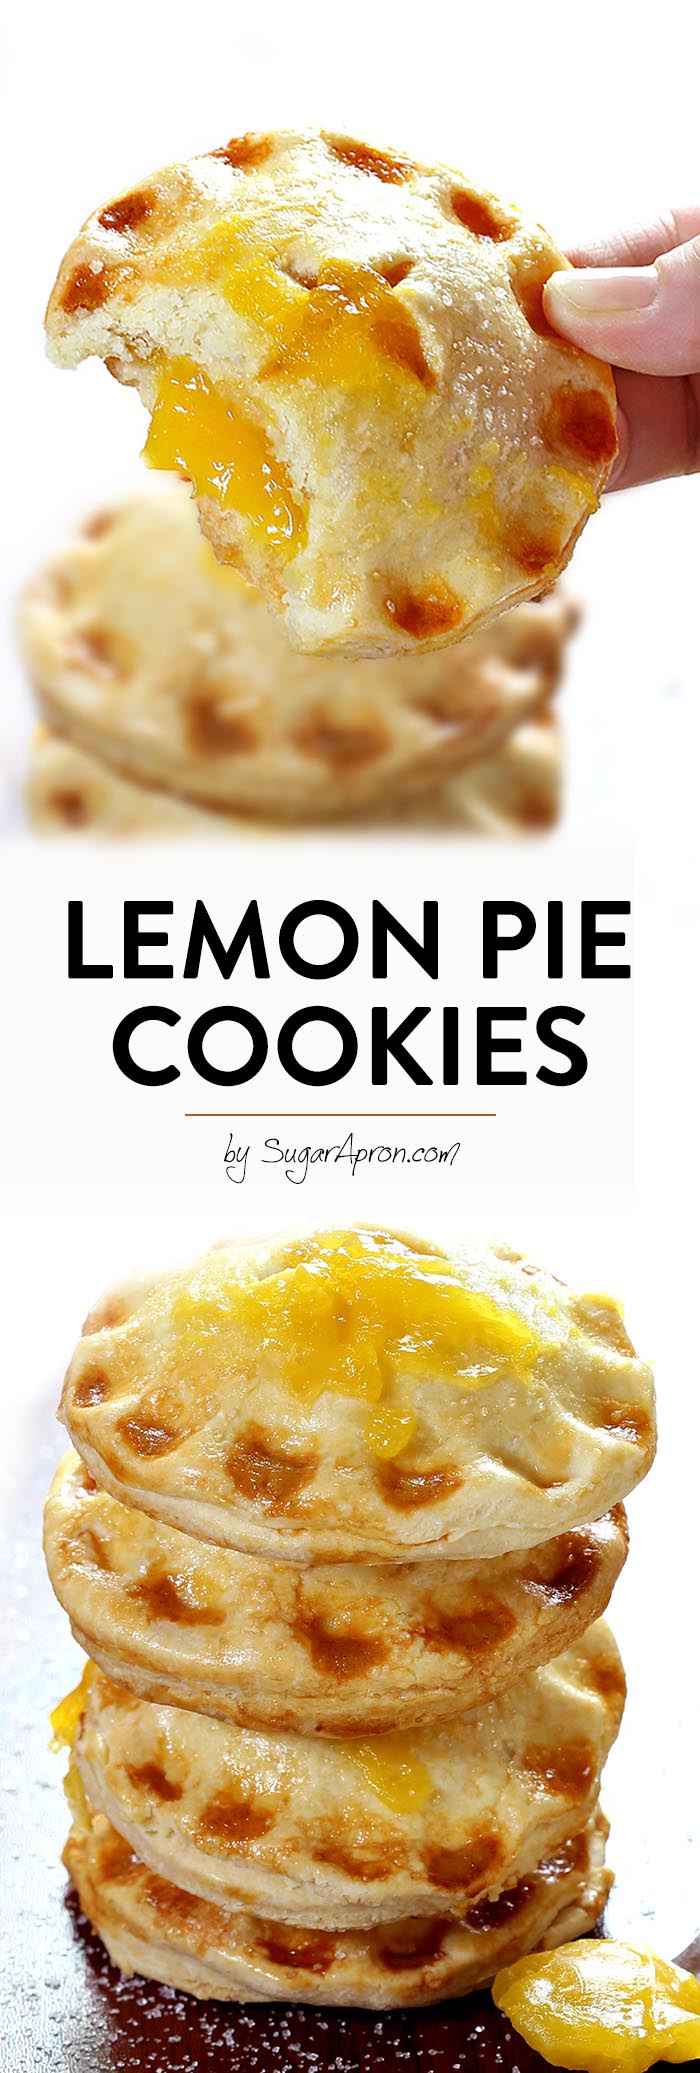 These Lemon Pie Cookies are what spring/summer dreams are made of. Simple and delicious they are sure to satisfy both your cookie and pie cravings.